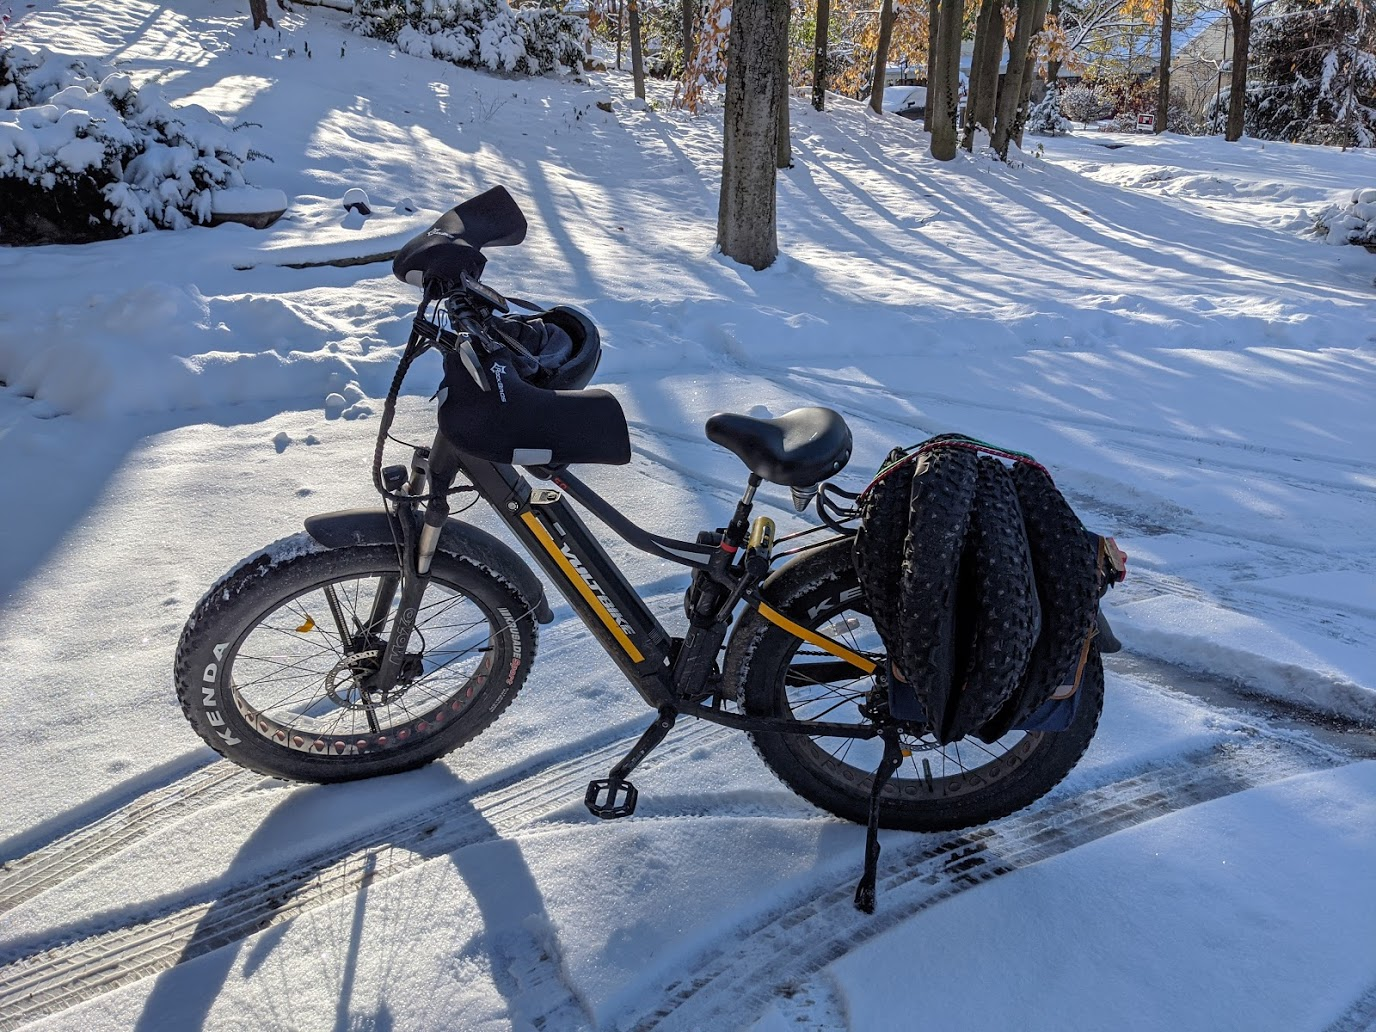 Tis the season to install your winter bike tires